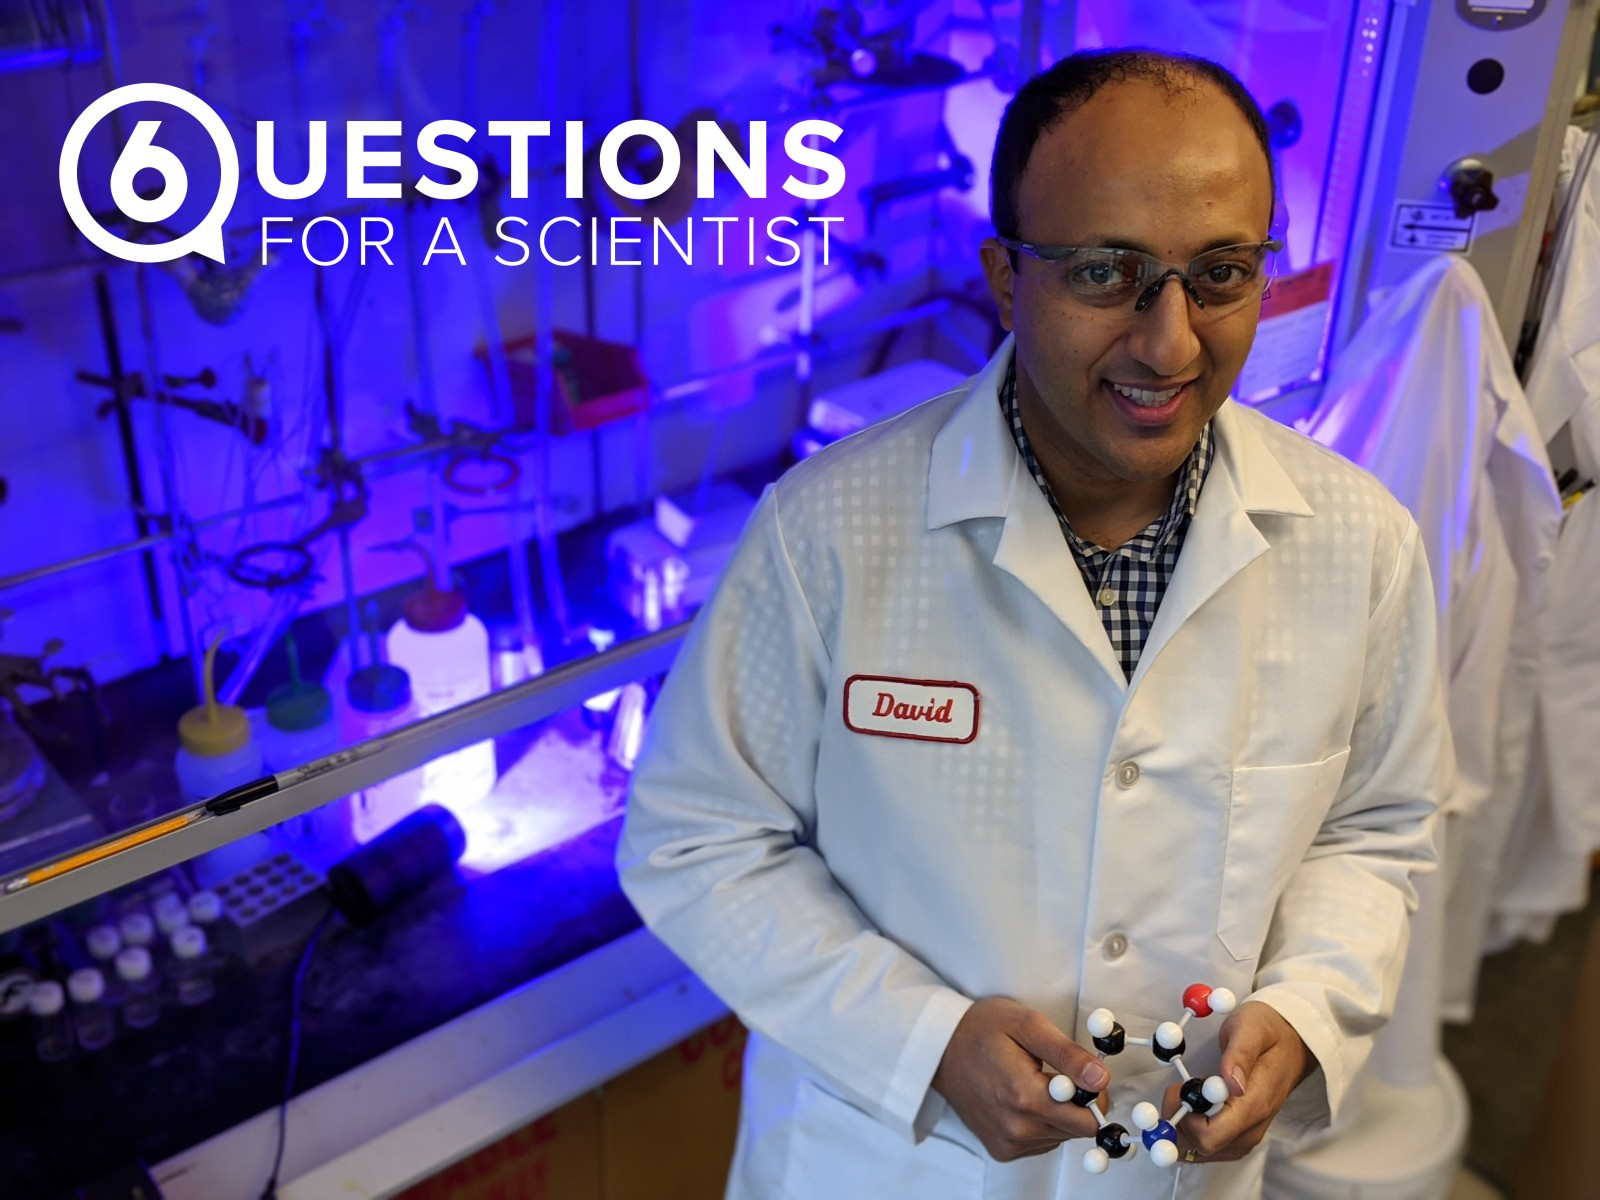 David Nagib, an assistant professor of chemistry at Ohio State, pictured in his lab.